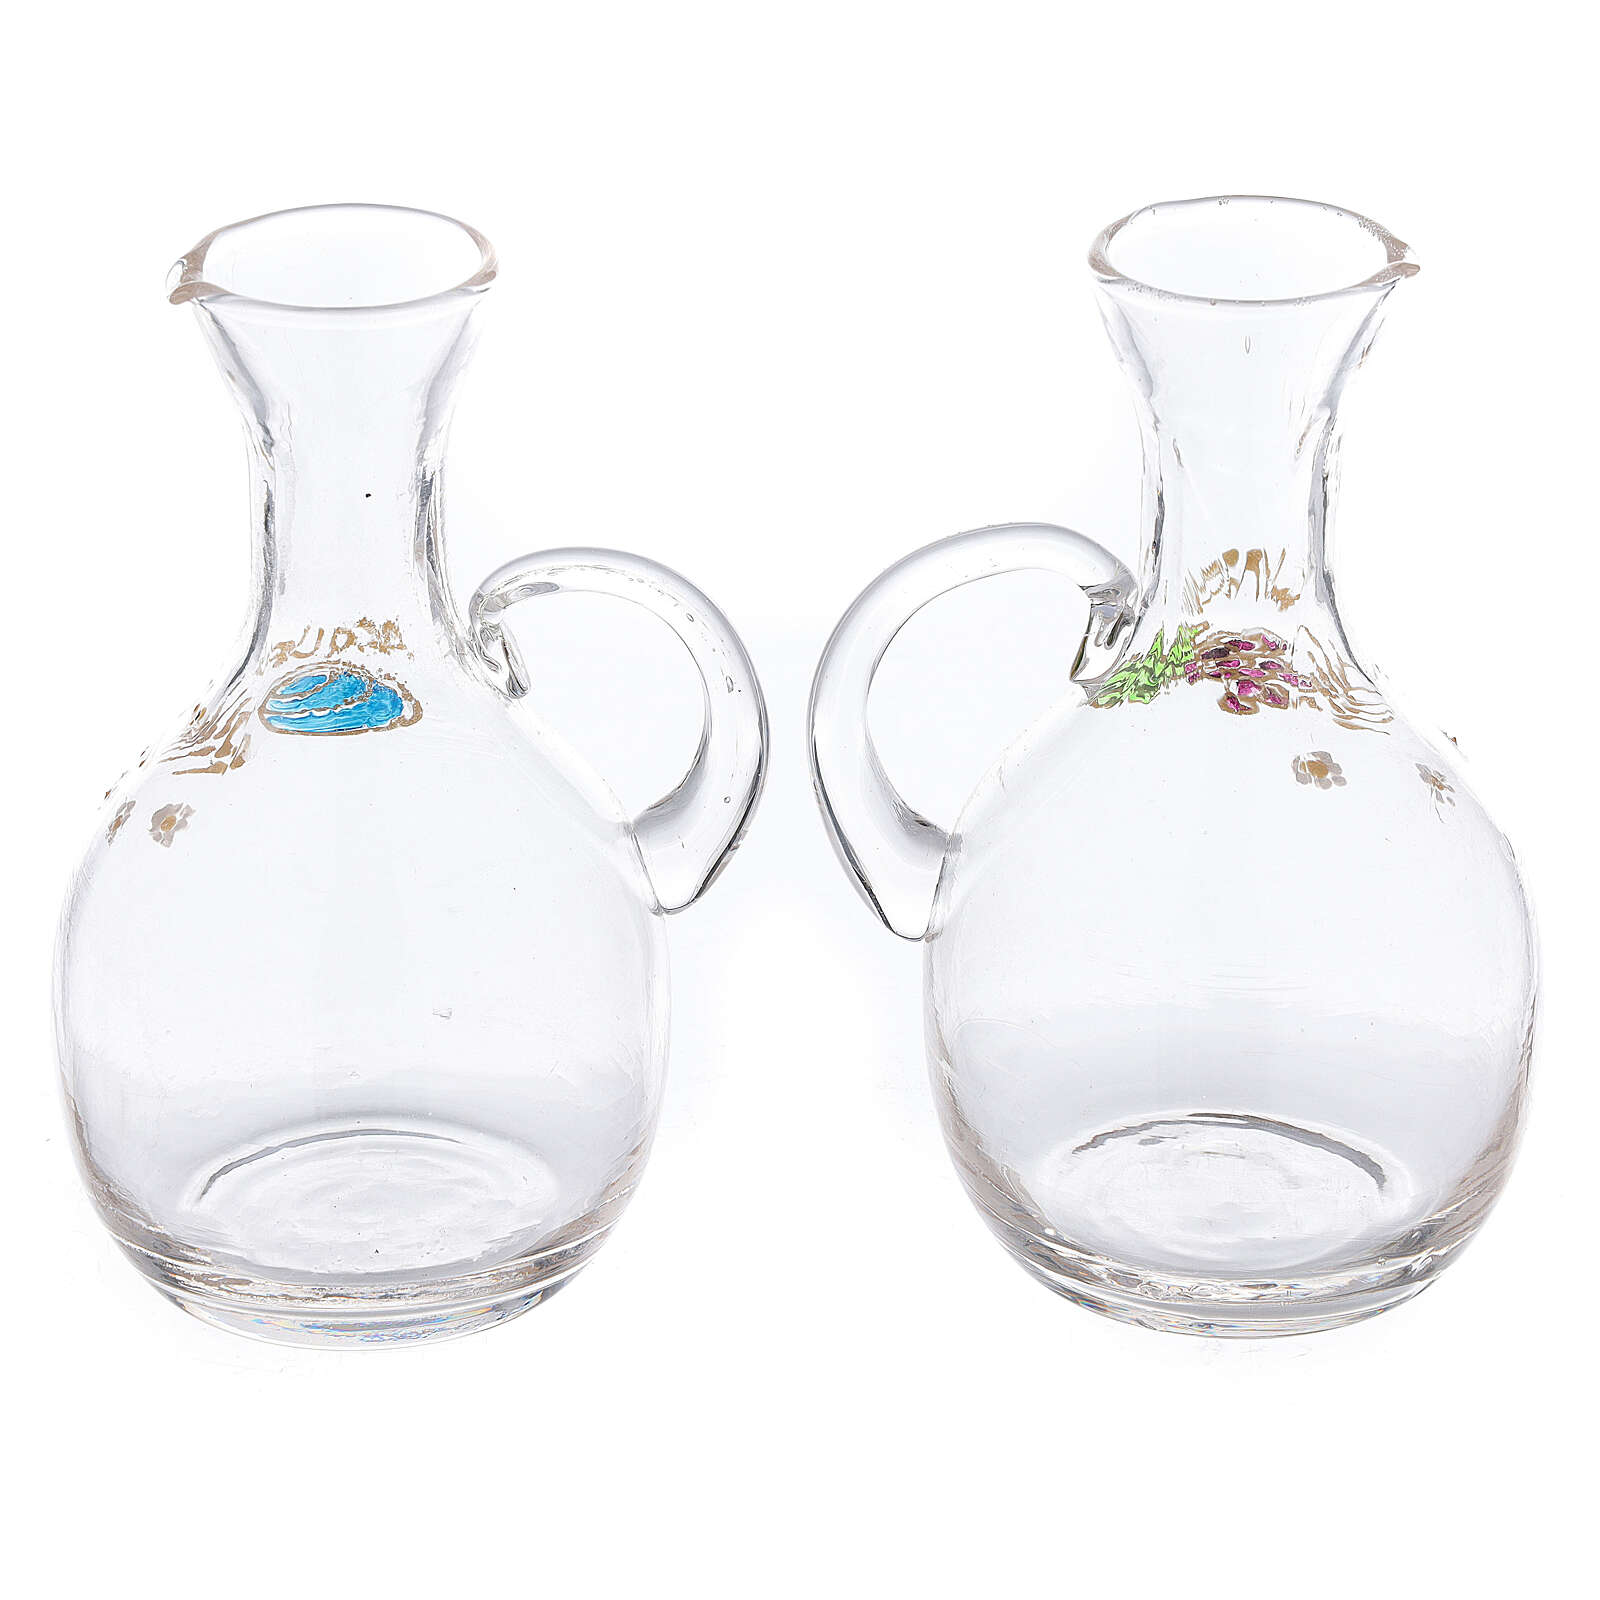 Cruet set in glass and nickel-plated brass Venise model with decorative ring 200 ml 4